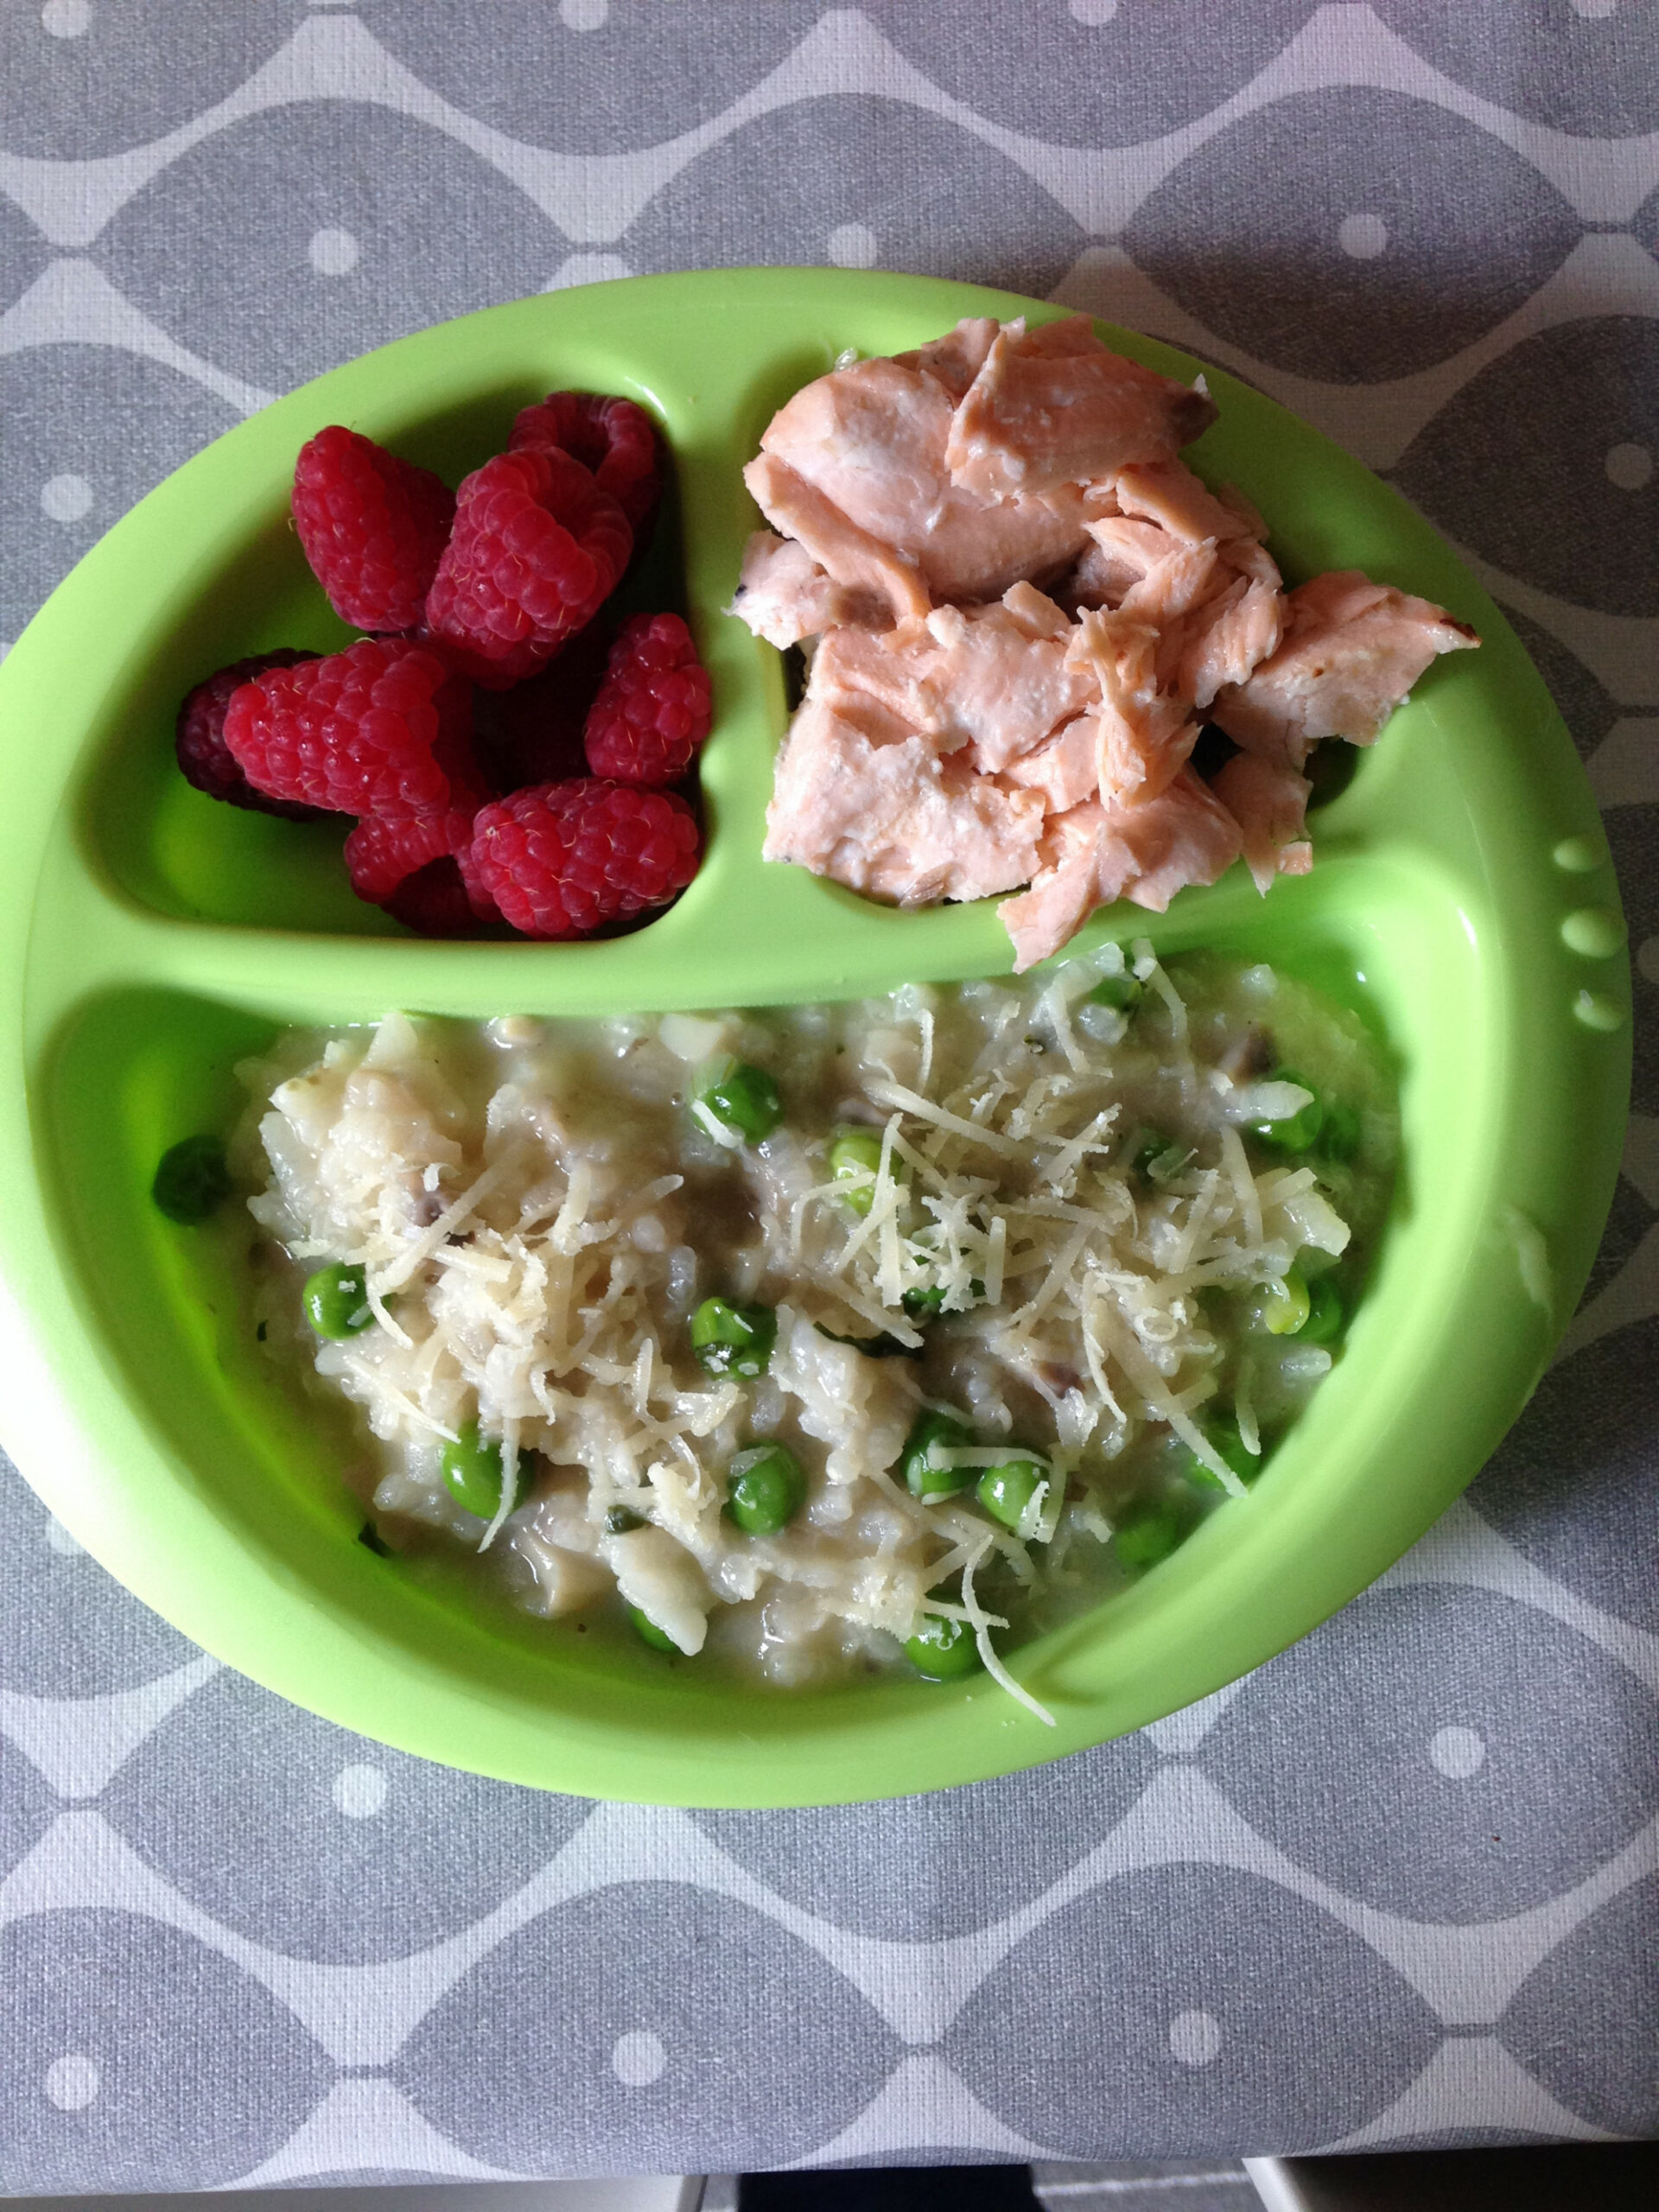 Toddler and baby Lunch Ideas – Adventures in Tandeming - recipes using baby food